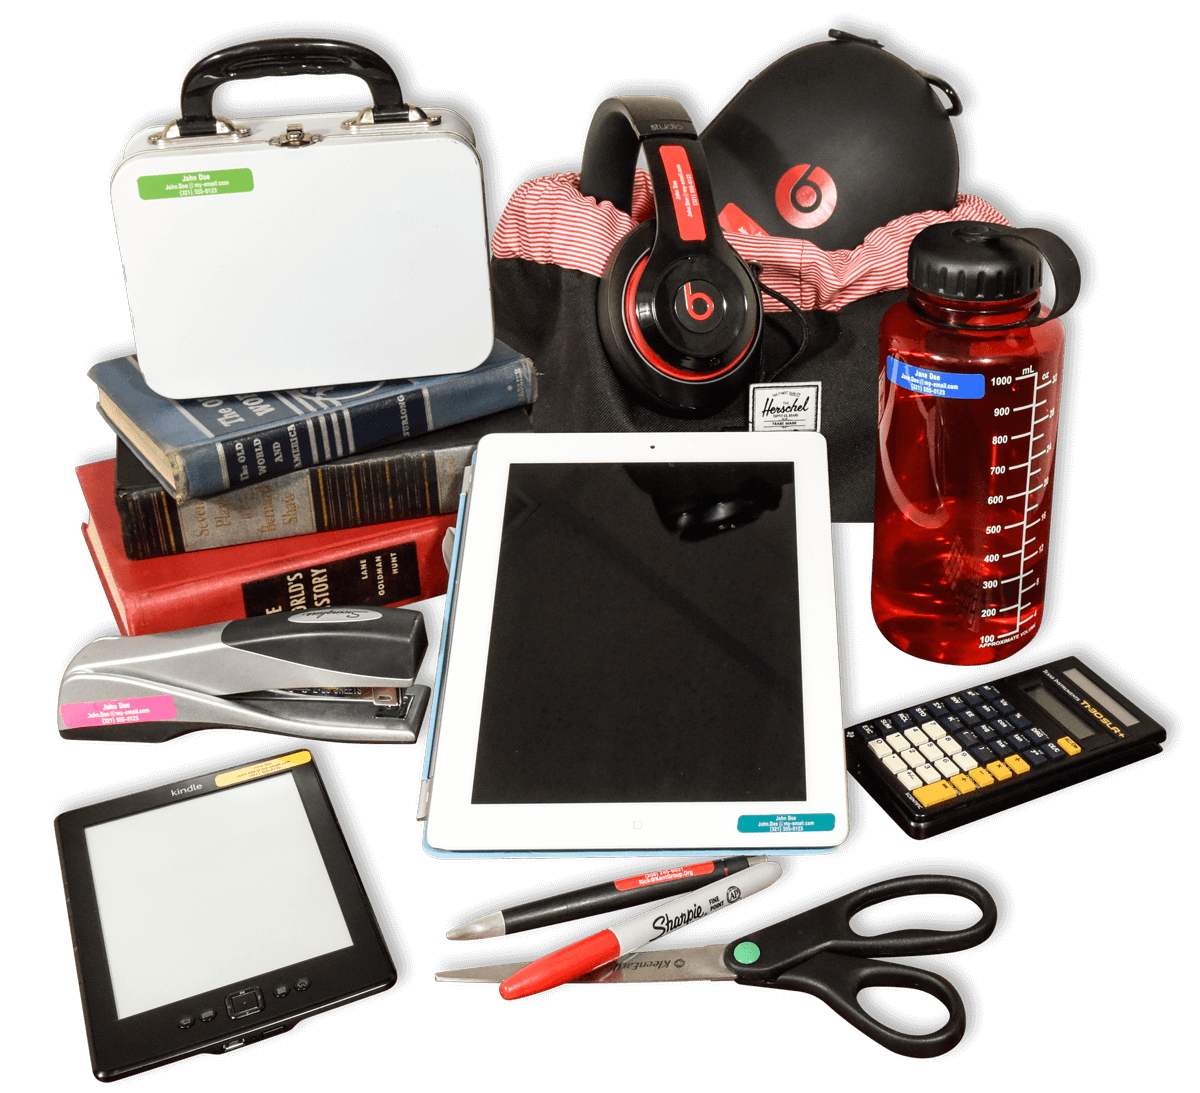 Headphones, water bottle, tablet and other school or office products tagged with ID labels in all three sizes and nine colors